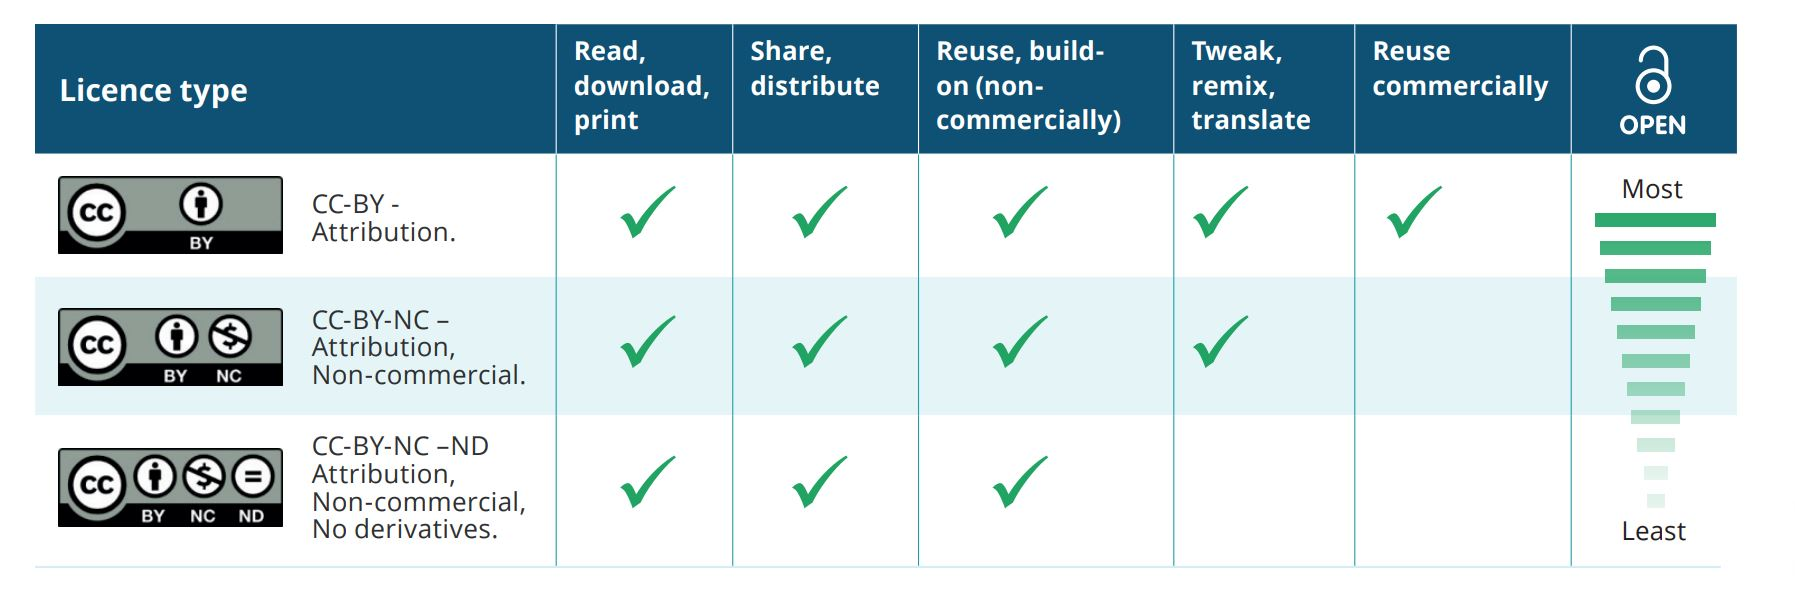 License Type Open Access Chart